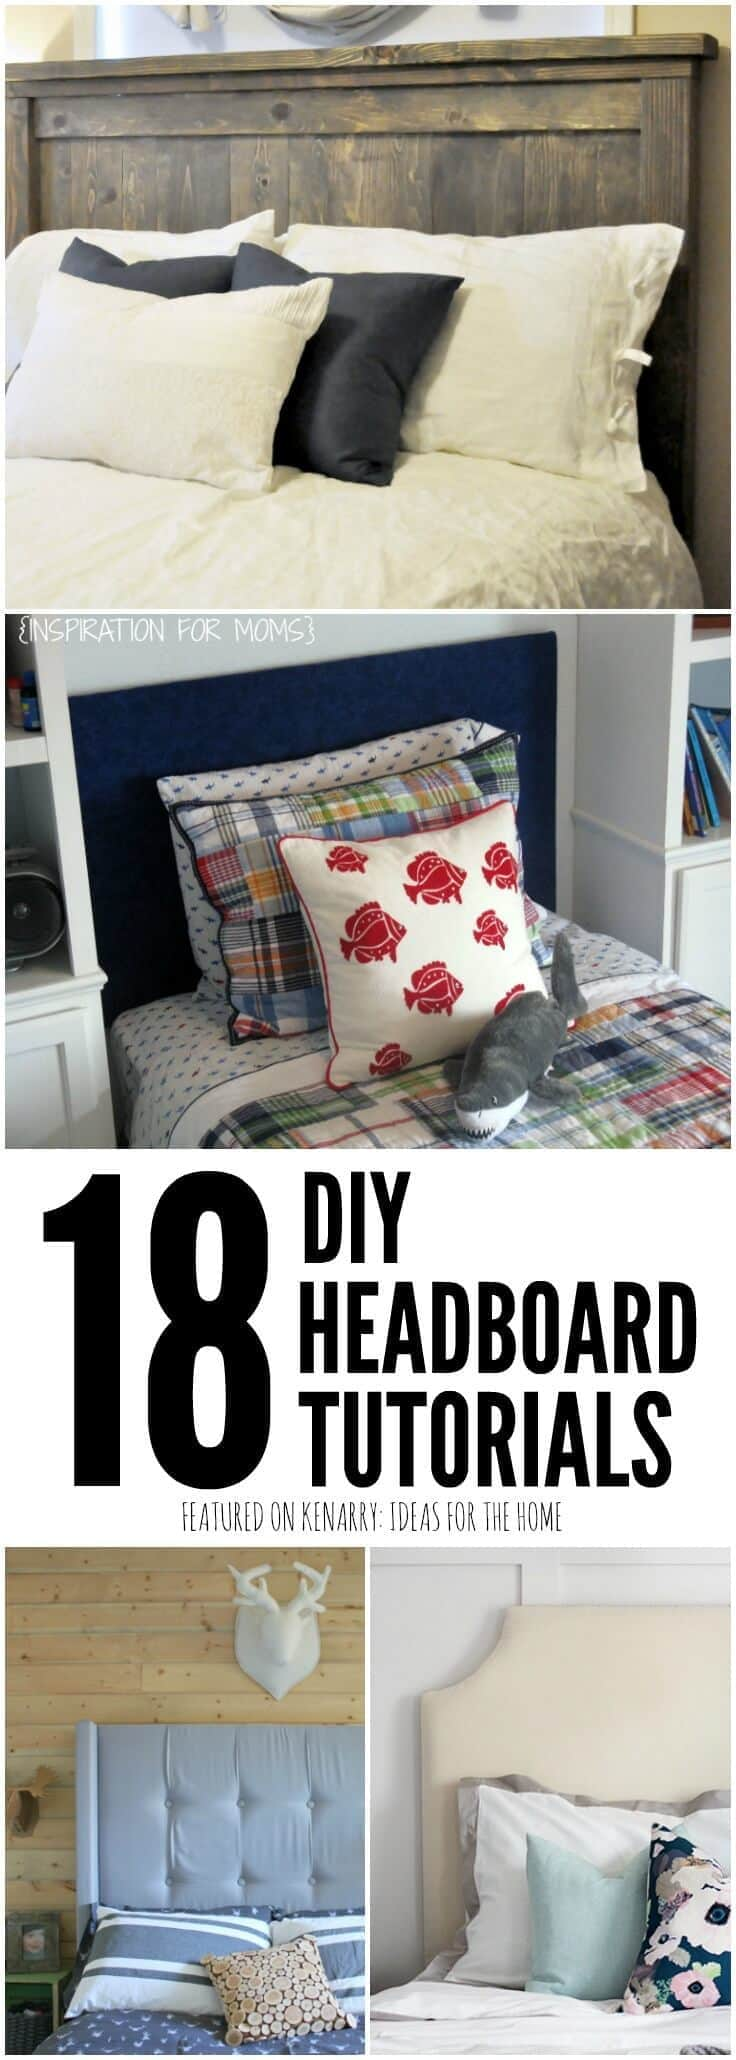 I've always wanted to make my own headboard for our bedroom. These DIY headboard tutorials make it look so easy -- and budget-friendly too!